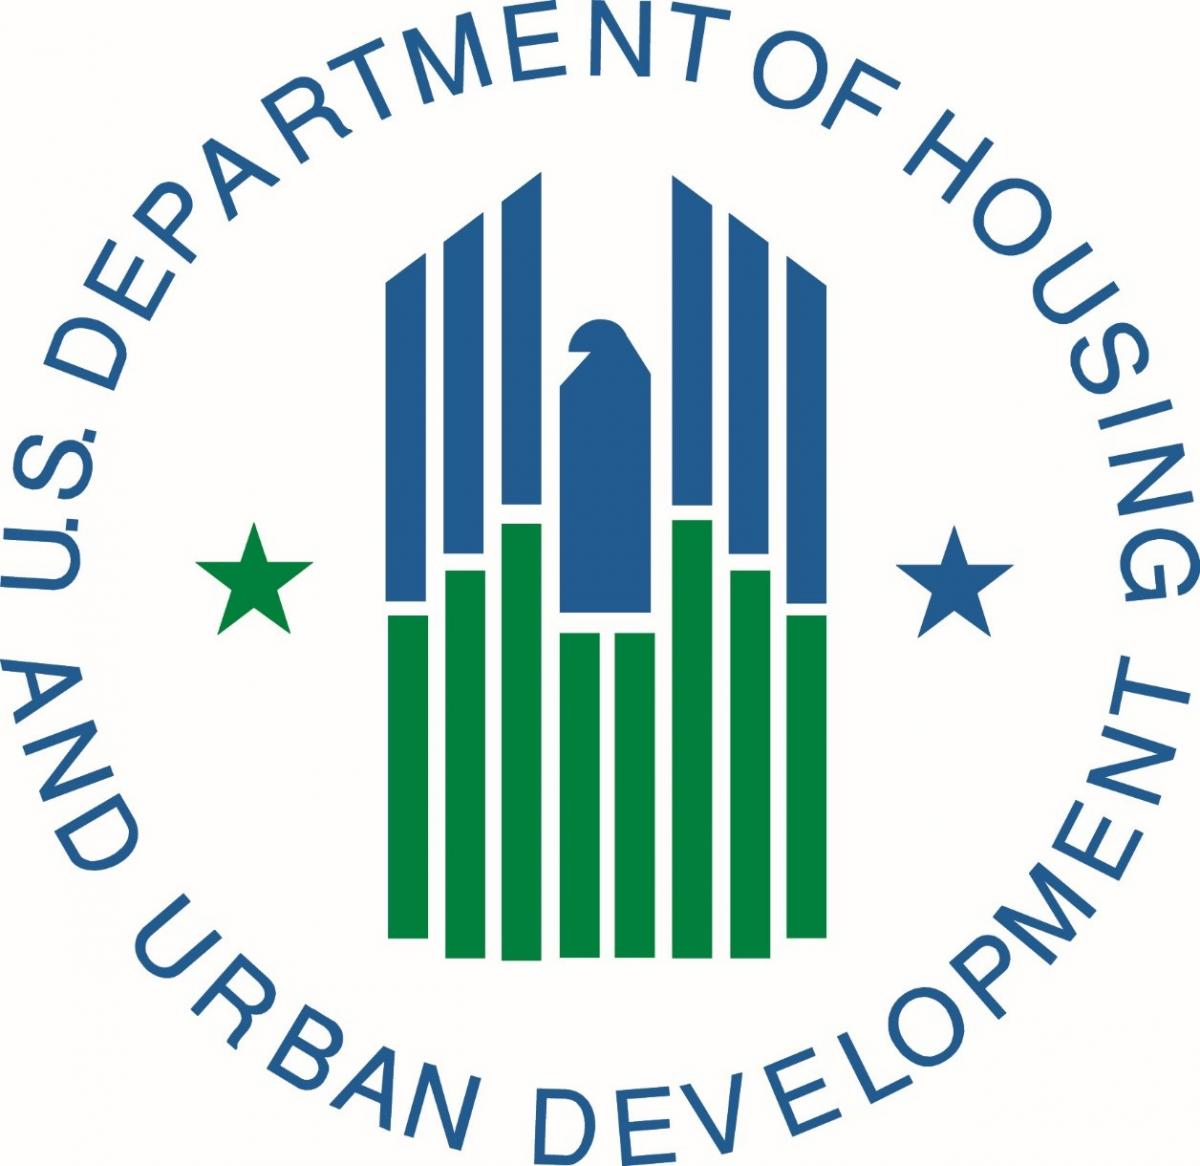 HUD Seal White Background file.jpg